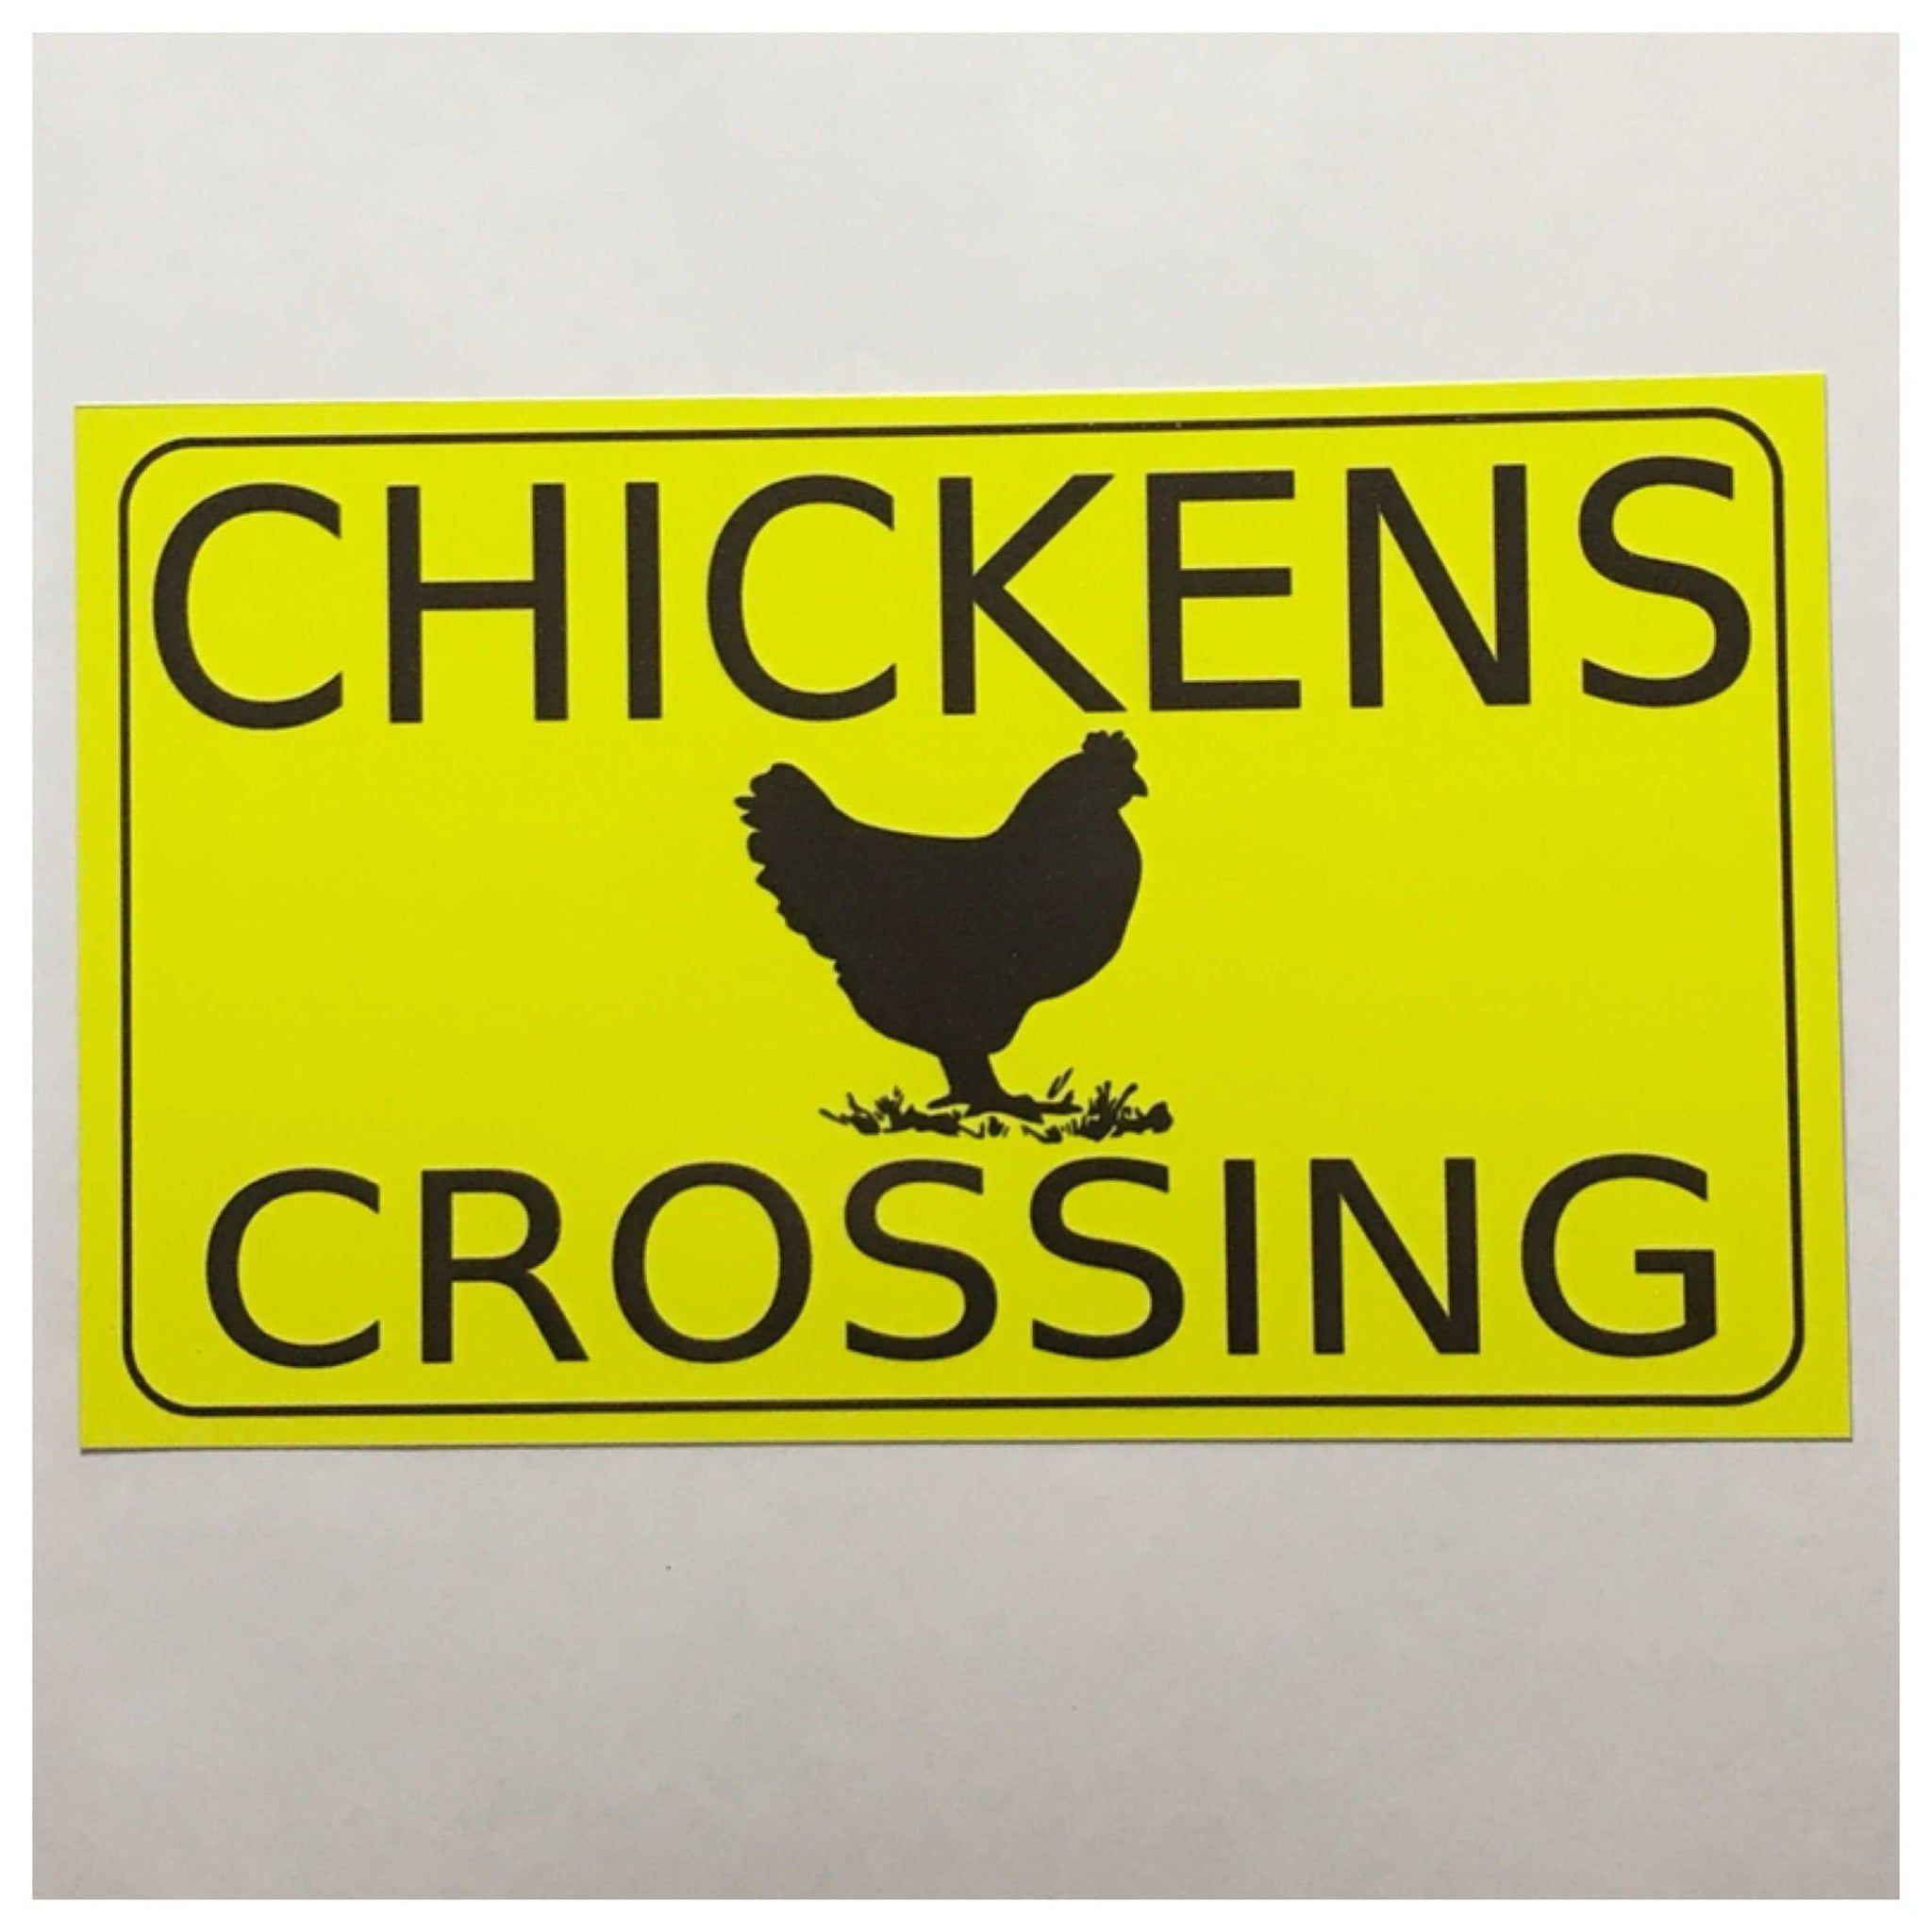 Chickens Crossing Sign - The Renmy Store